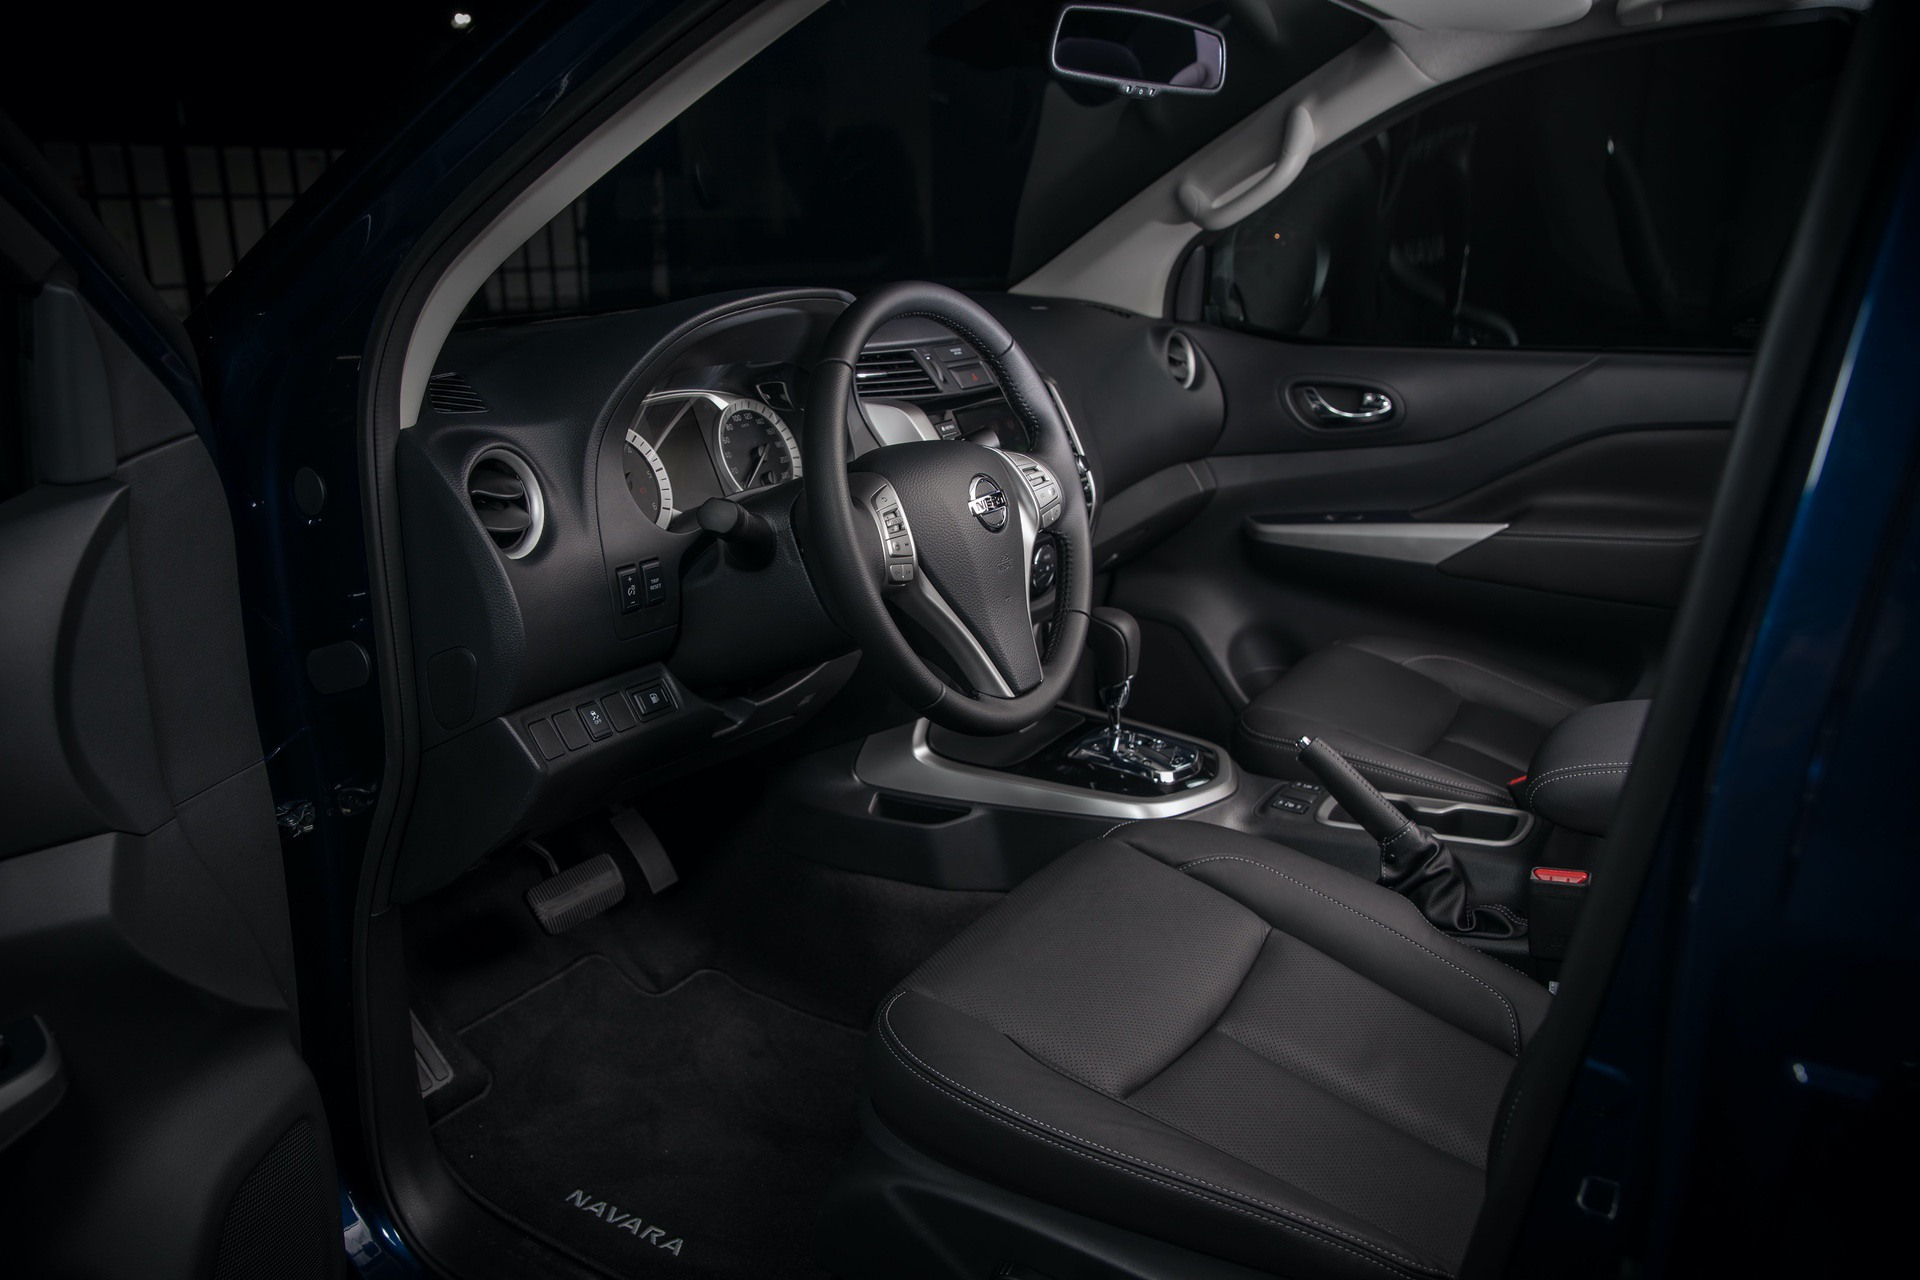 Nissan-Navara-Double-Cab-Blue-Interior-2